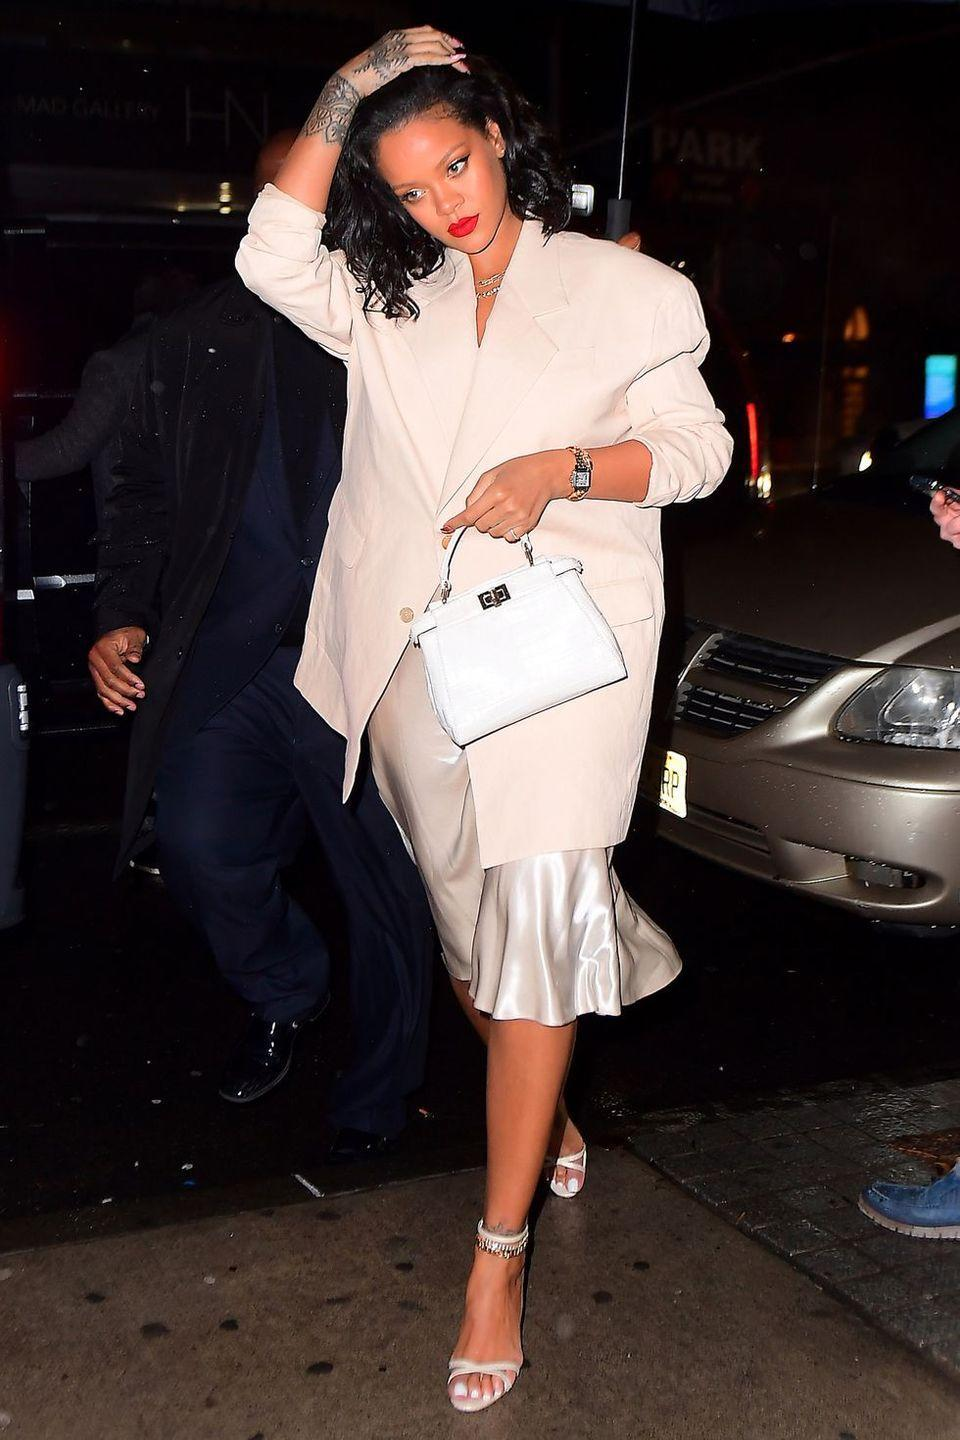 "<p>In a blush oversized blazer, champagne slip dress, heeled sandals, and a white Fendi mini peekaboo bag while out in NYC.</p><p><a class=""link rapid-noclick-resp"" href=""https://go.redirectingat.com?id=74968X1596630&url=https%3A%2F%2Fwww.net-a-porter.com%2Fus%2Fen%2Fproduct%2F895774%2Ffendi%2Fpeekaboo-mini-leather-shoulder-bag&sref=https%3A%2F%2Fwww.harpersbazaar.com%2Ffashion%2Fstreet-style%2Fg7351%2Frihanna-street-style%2F"" rel=""nofollow noopener"" target=""_blank"" data-ylk=""slk:Shop"">Shop</a></p>"